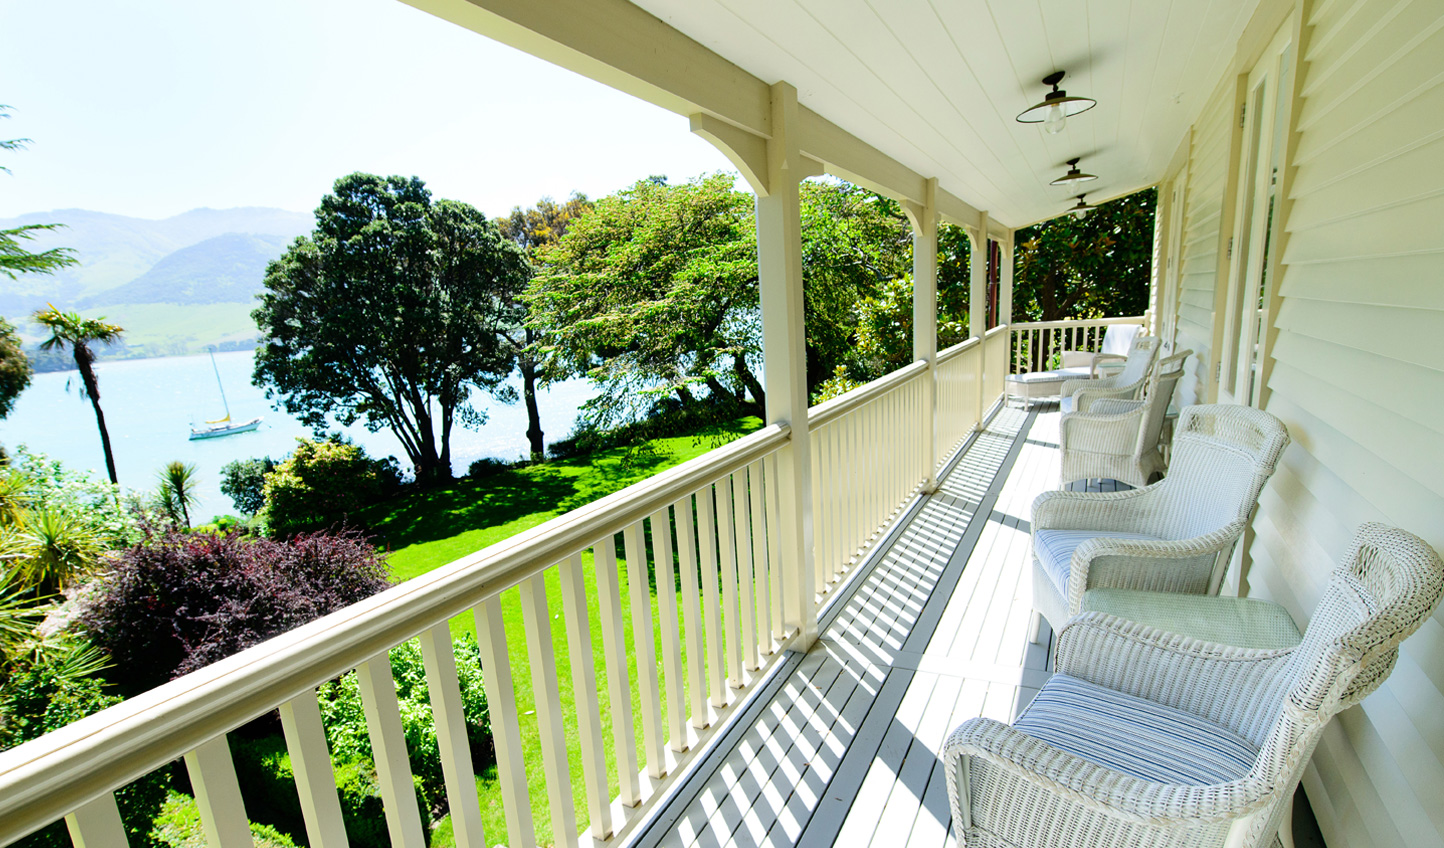 Step out of your bedroom onto a balcony basked in light